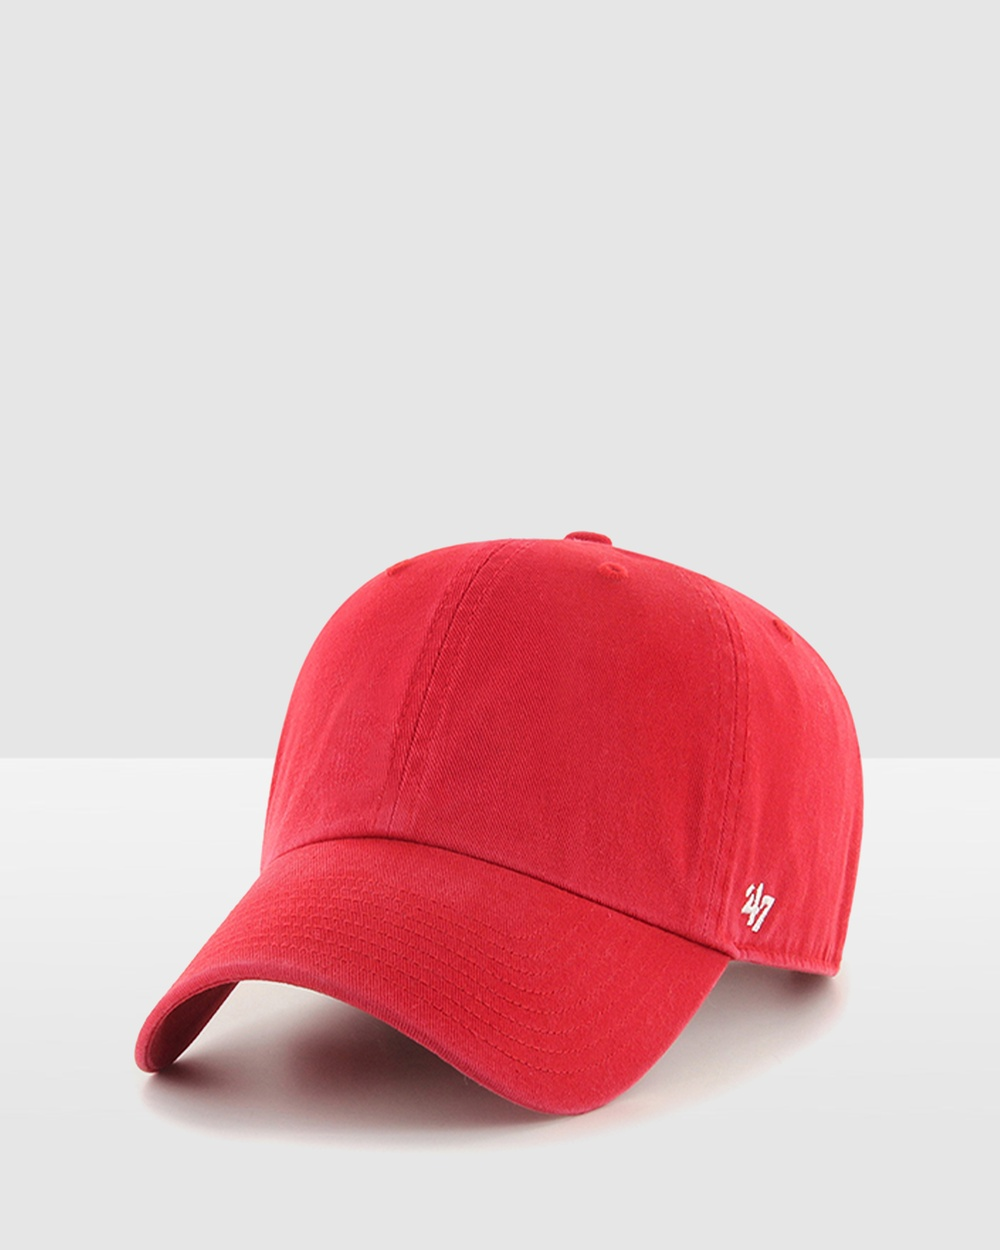 47 Classic Red '47 CLEAN UP Headwear red